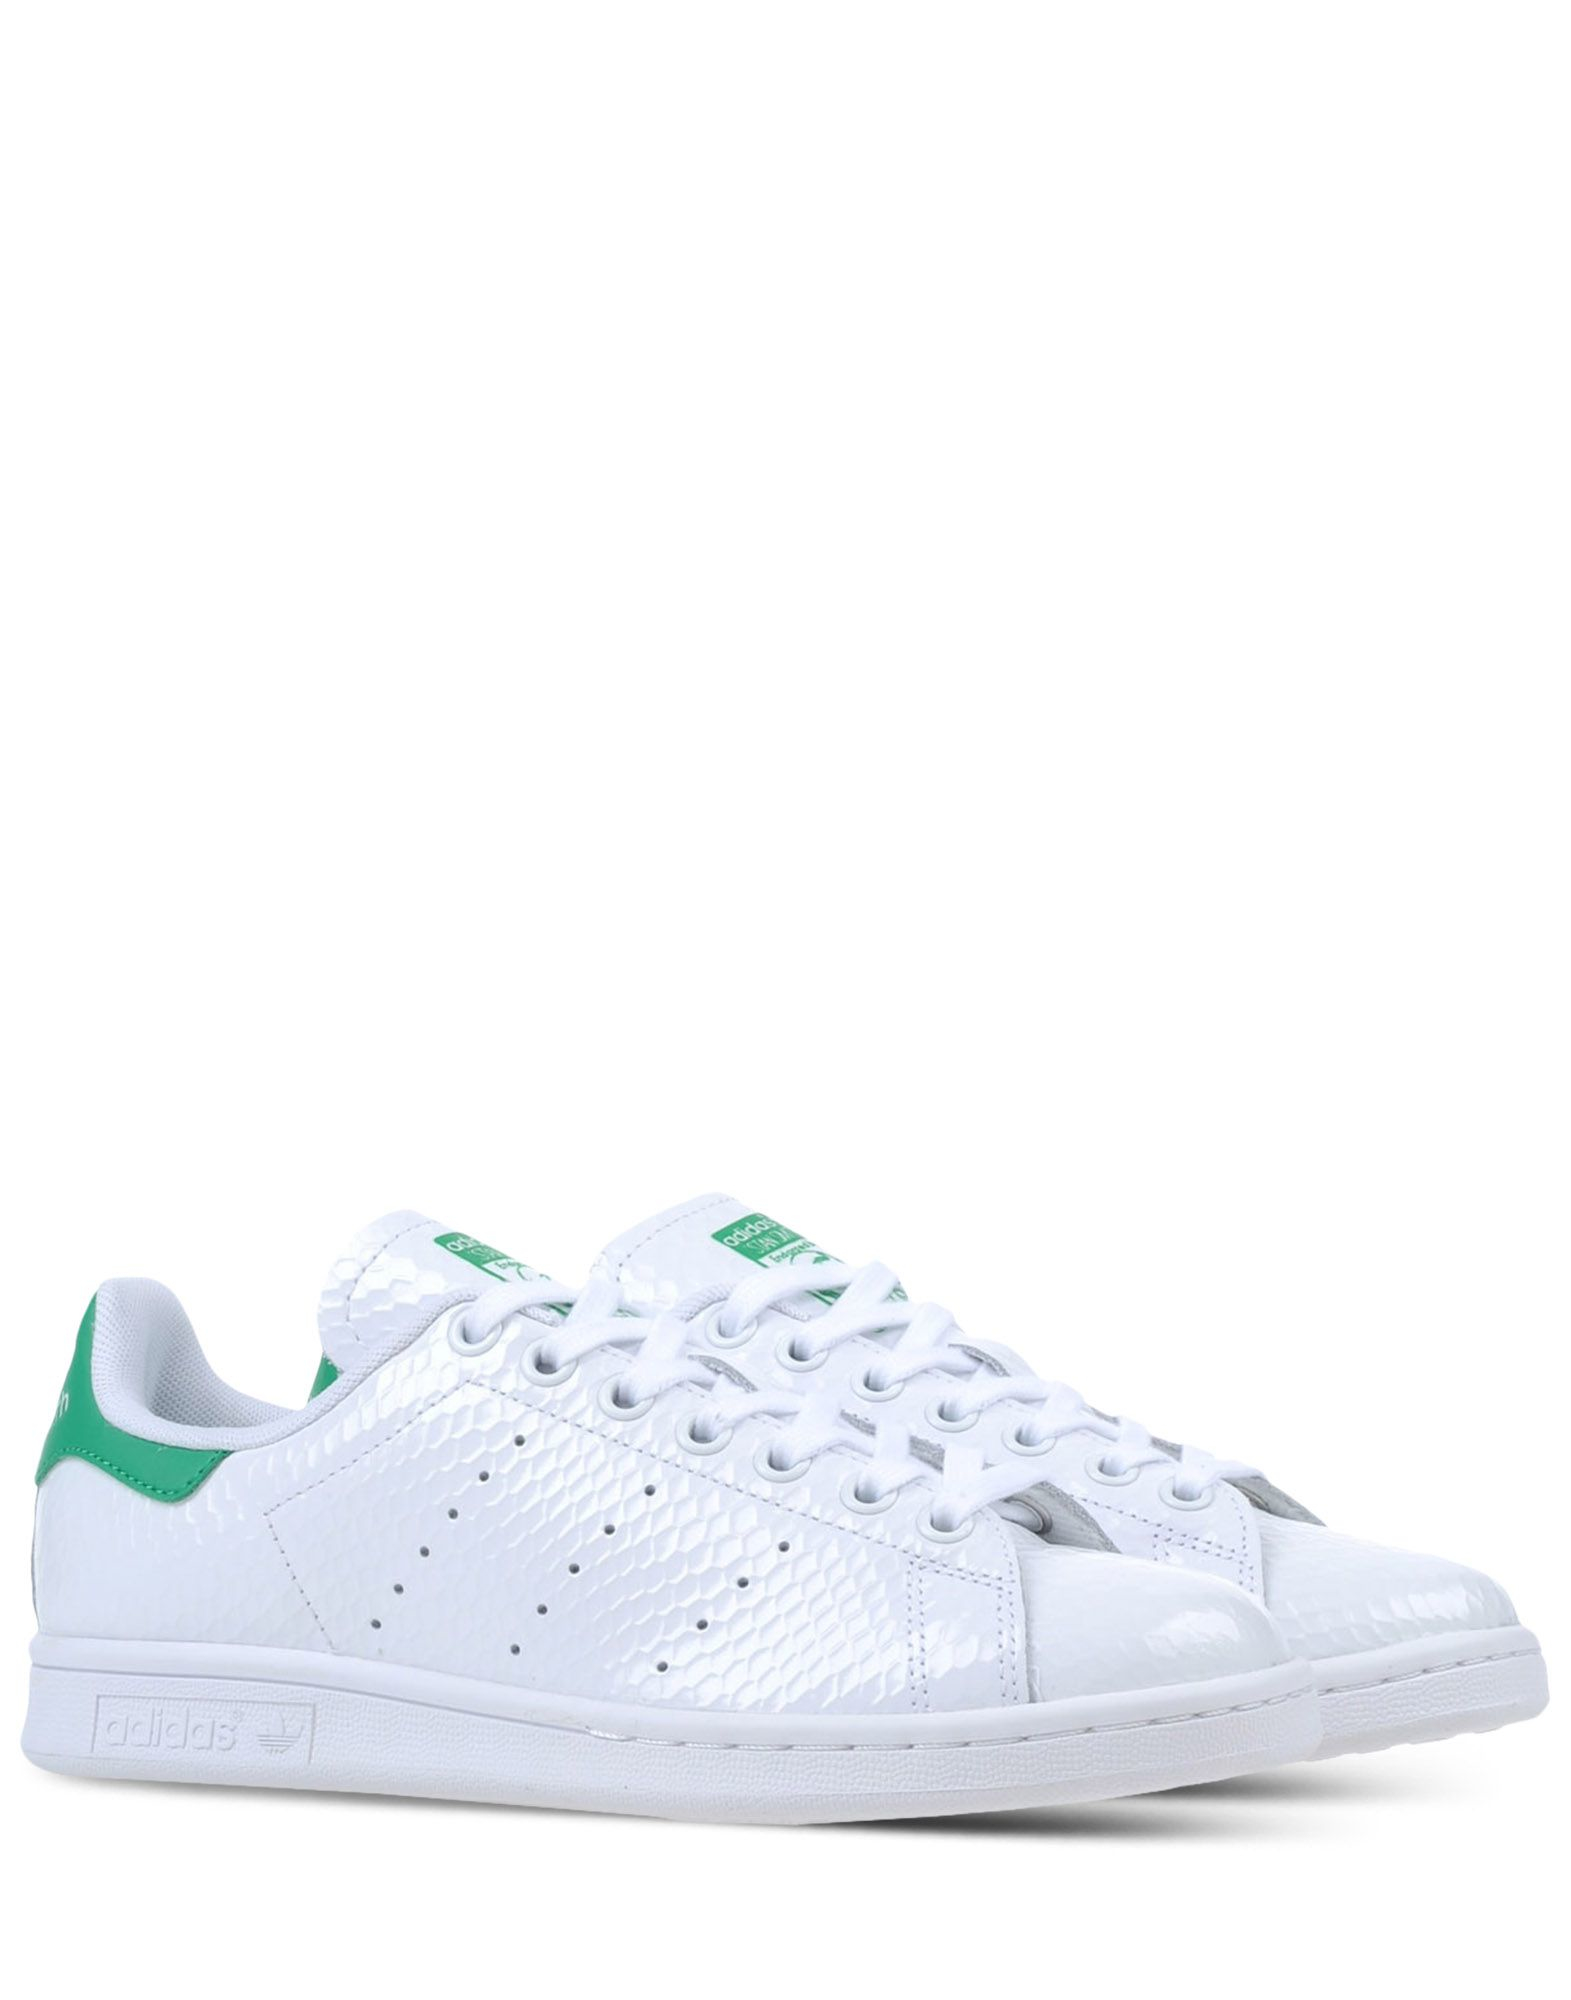 adidas originals varnished leather low top sneakers in